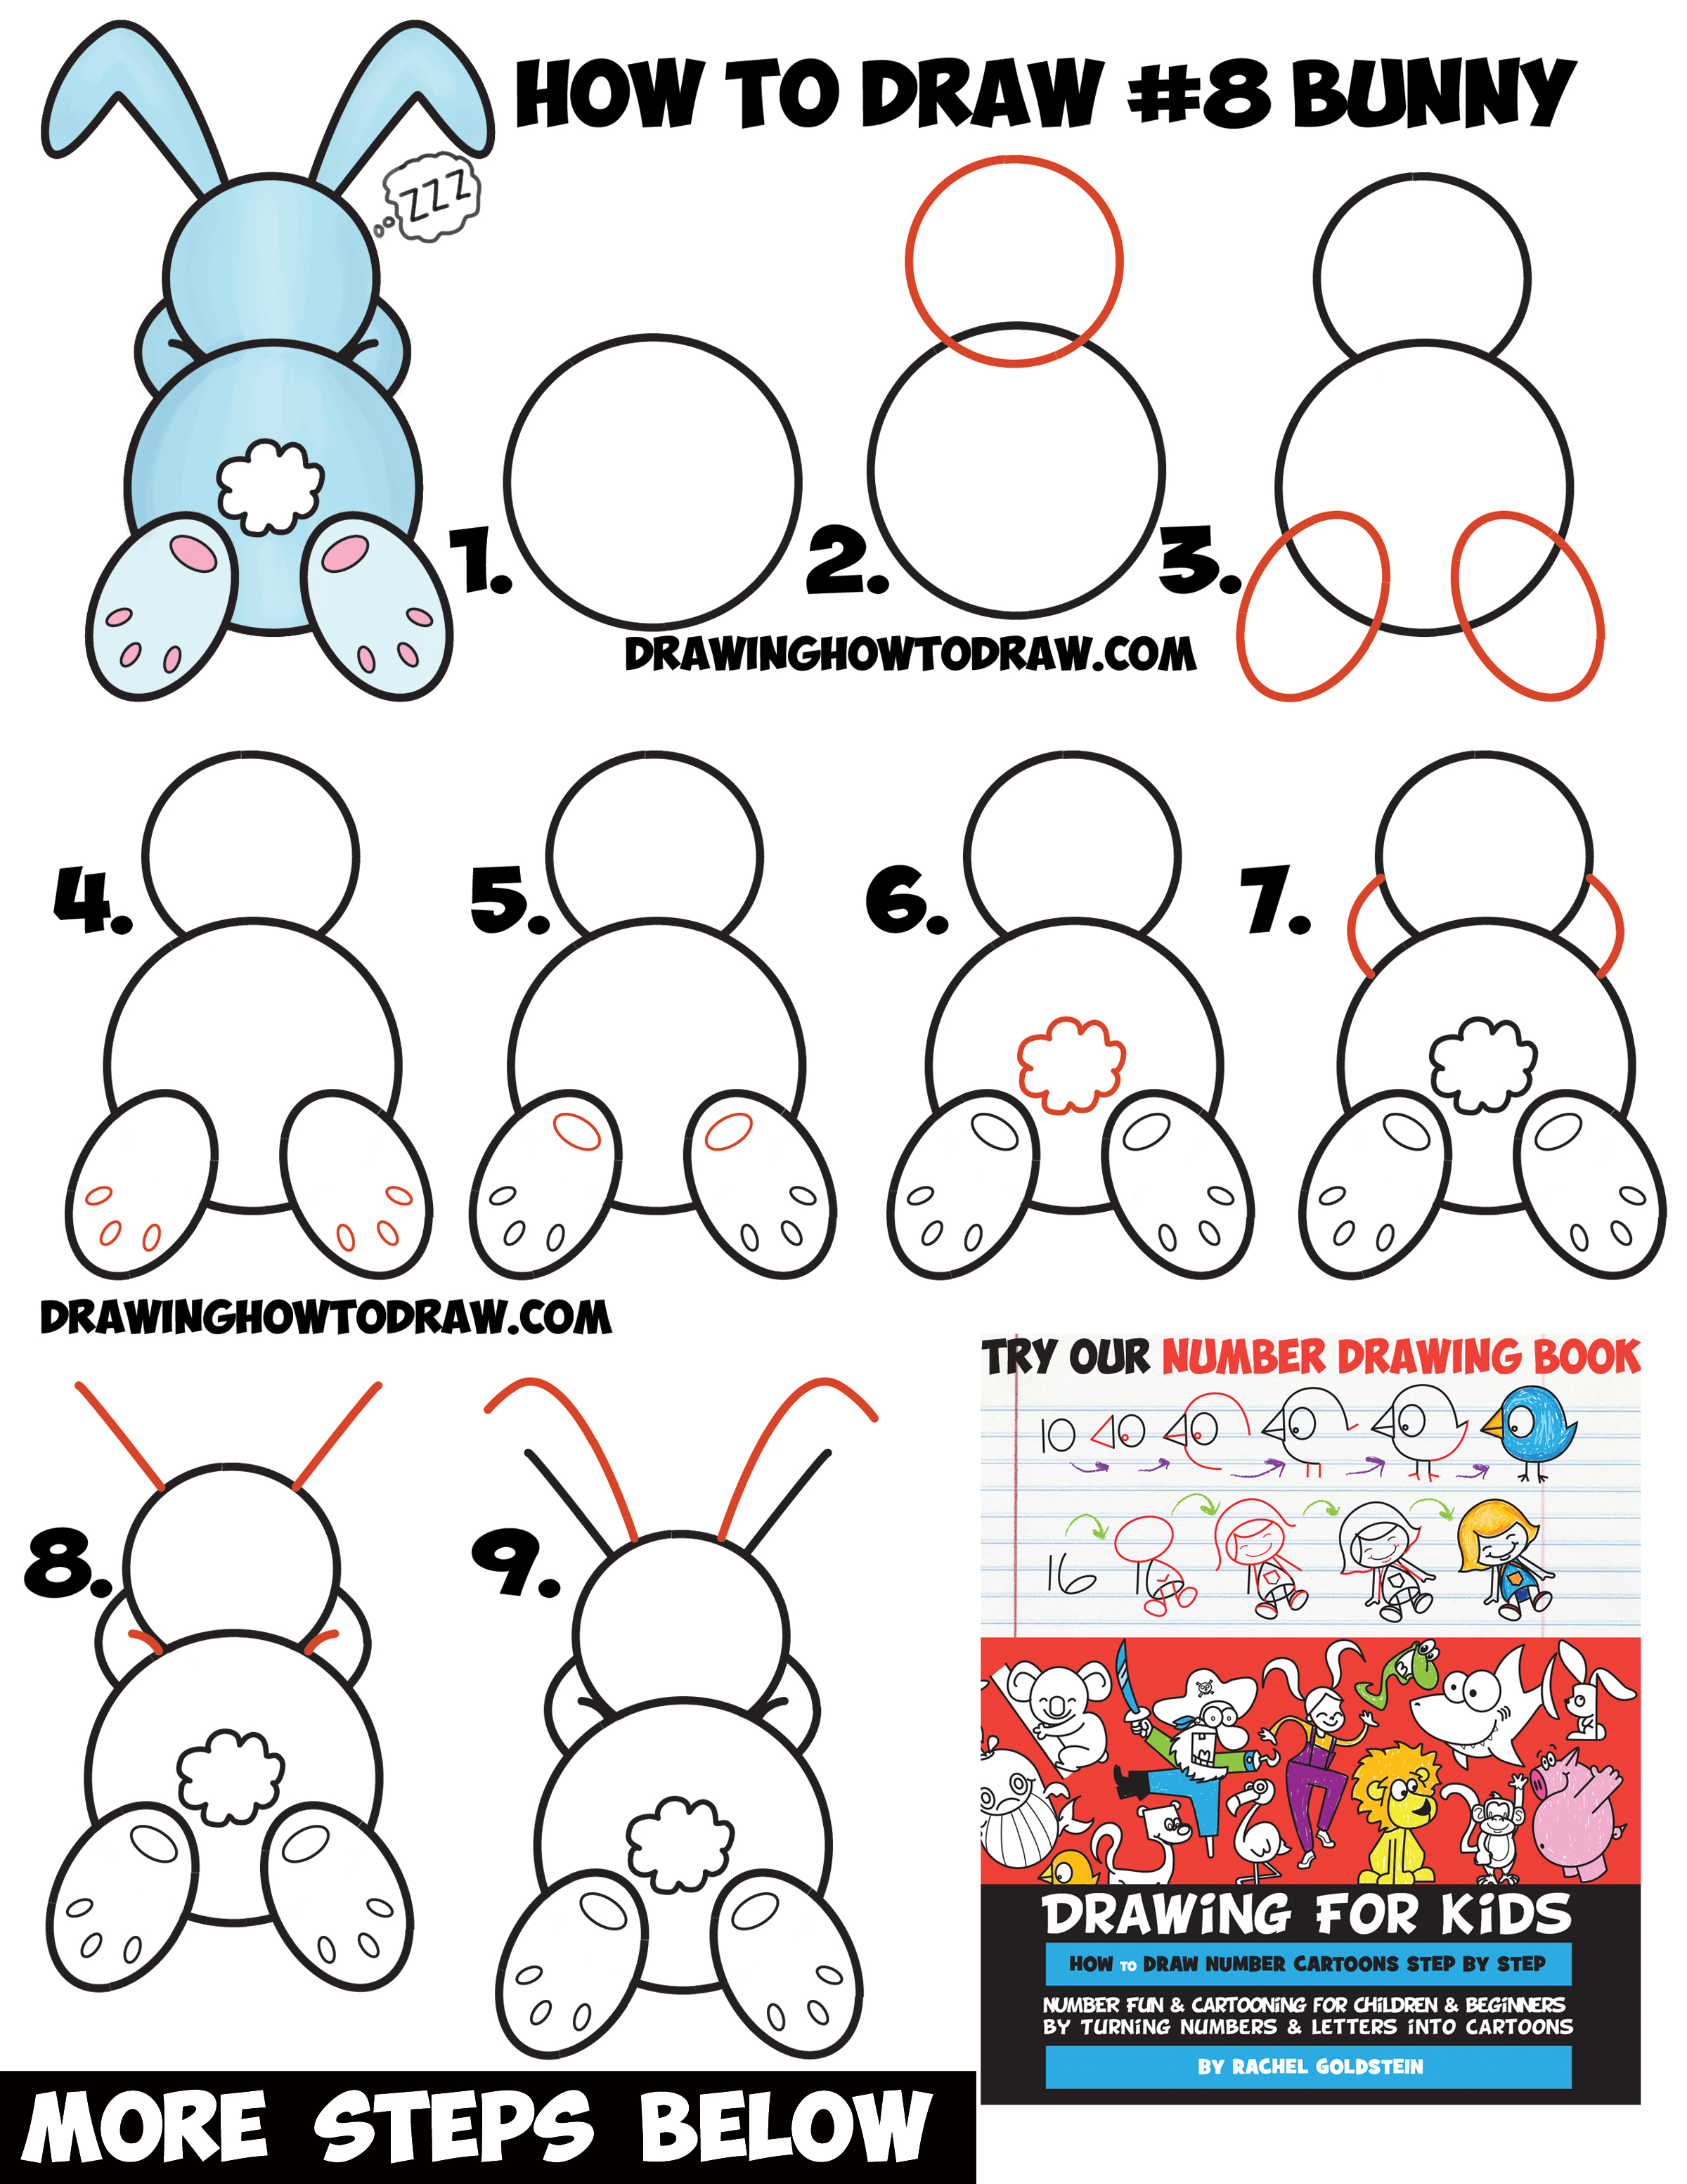 How To Draw A Cute Cartoon Sleeping Bunny Rabbit From #8 Shape Easy Step By